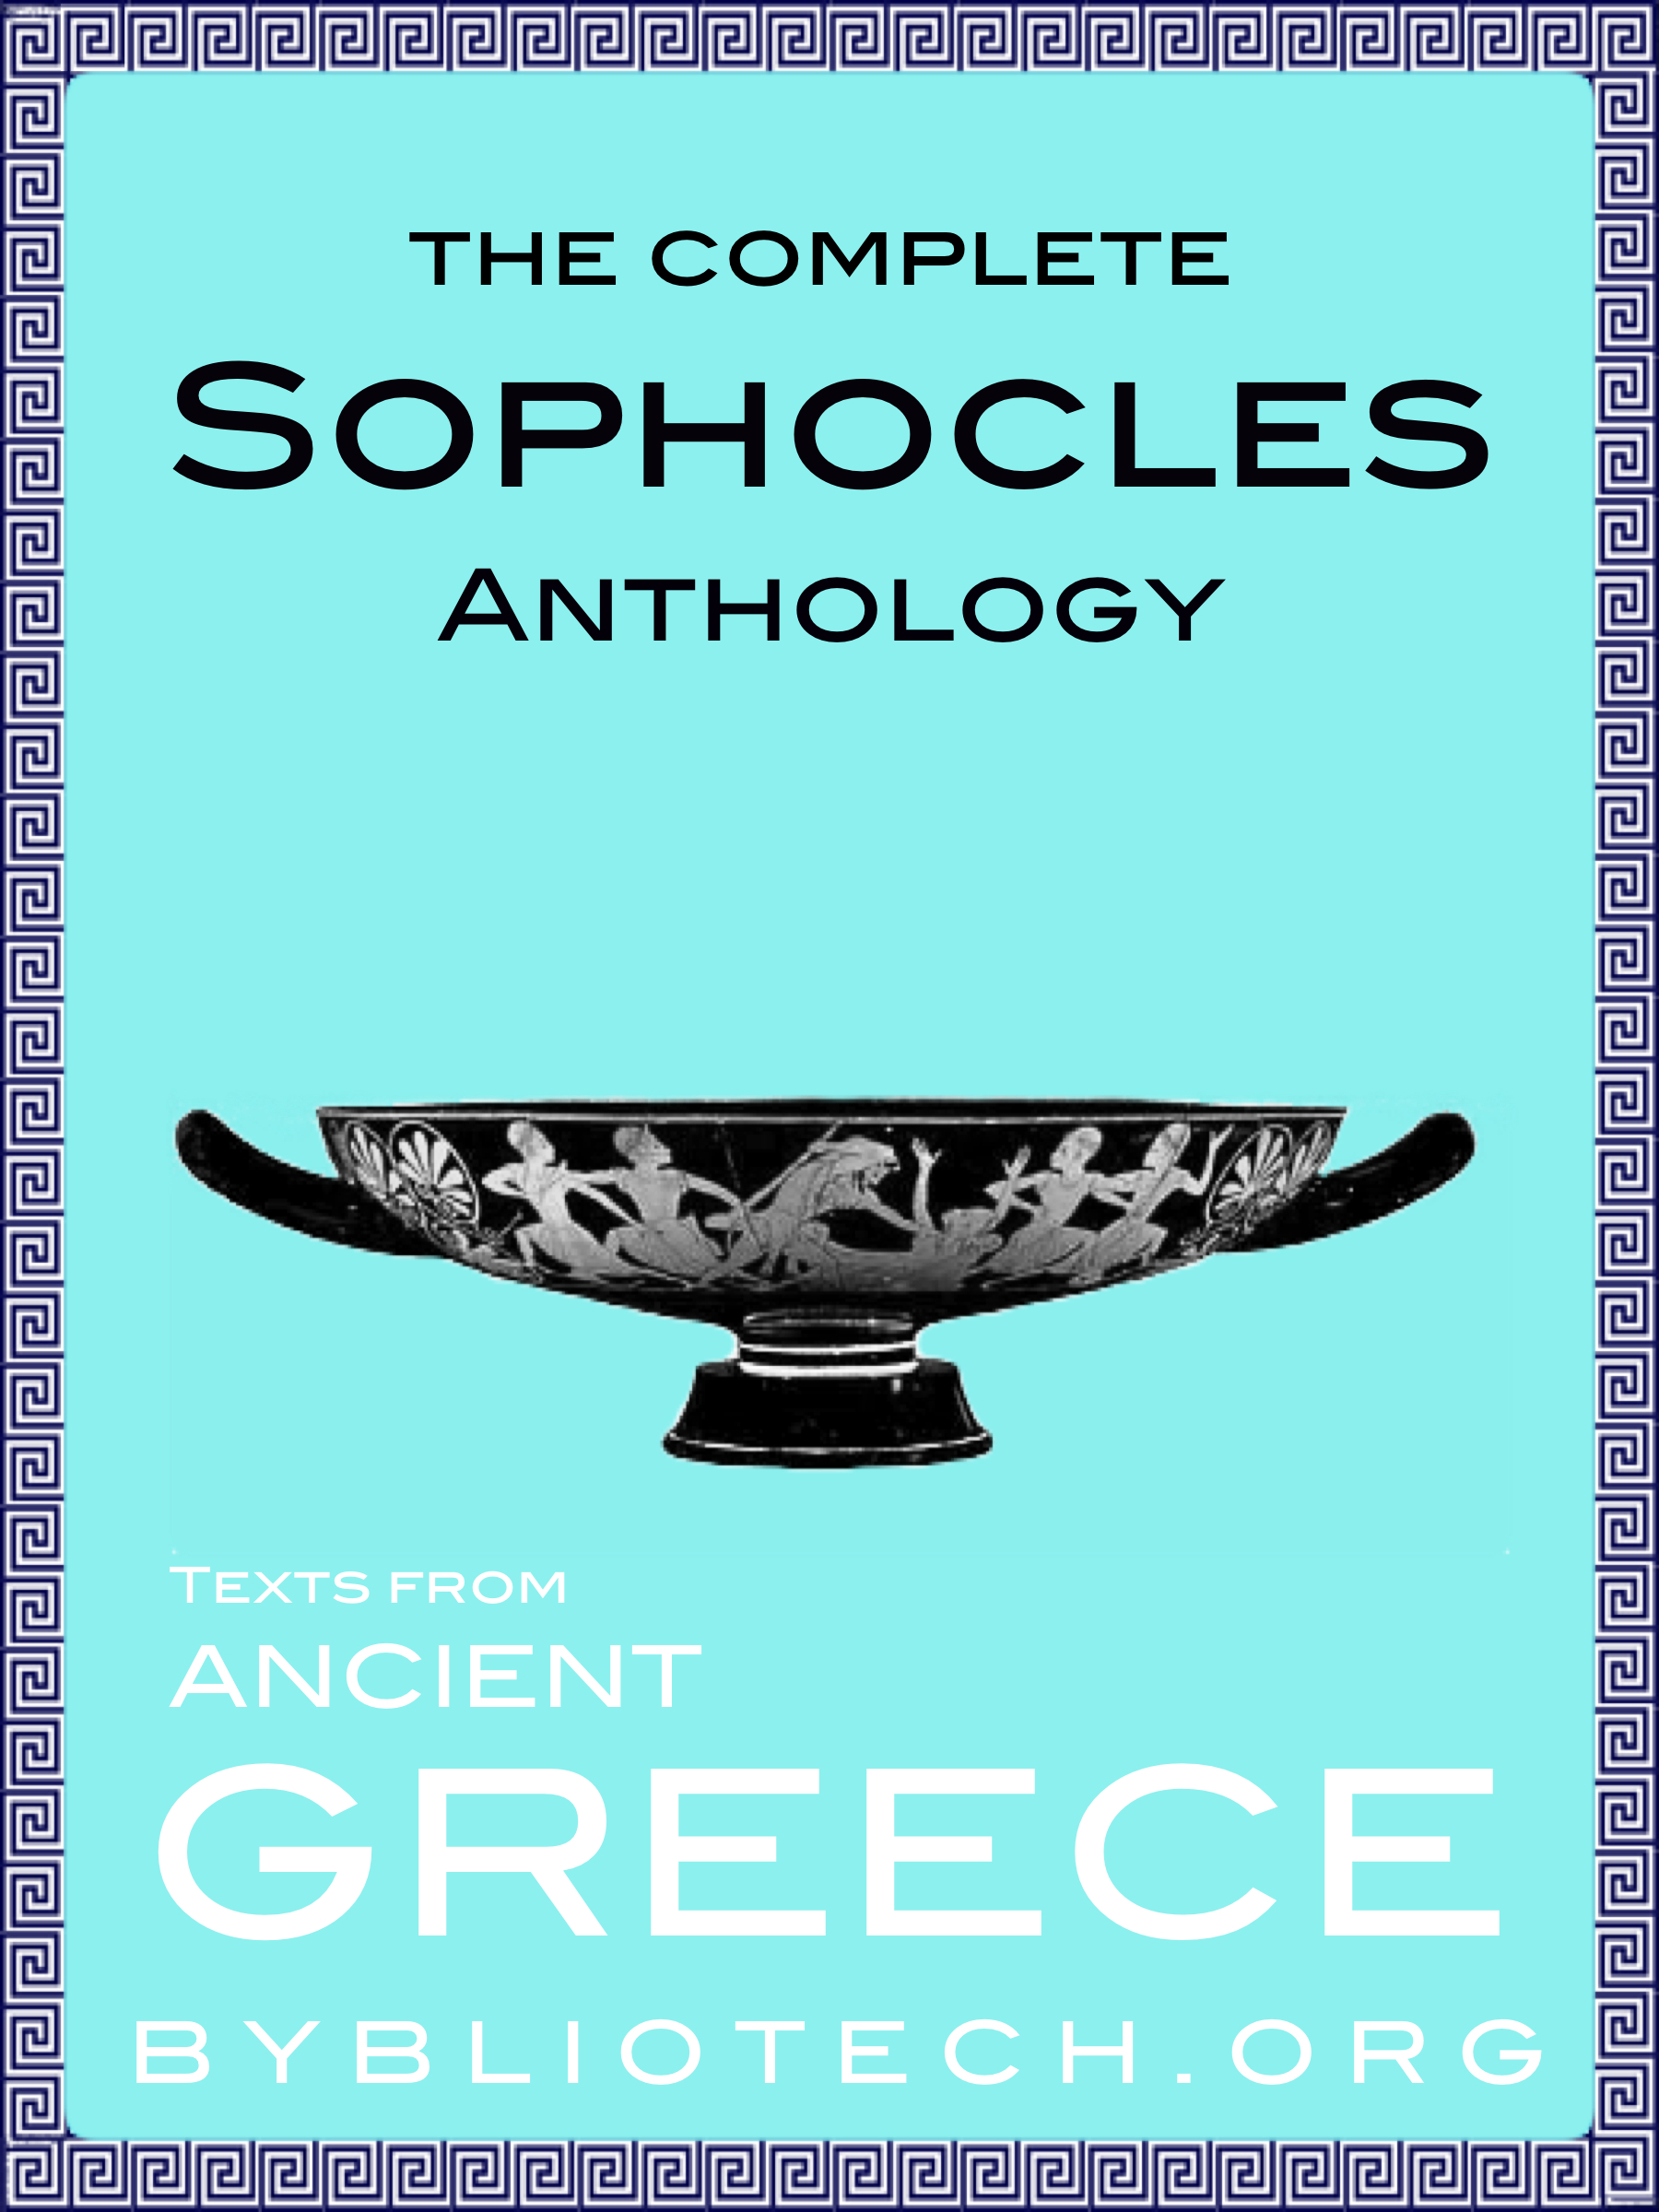 a personal analysis of antigone a play by sophocles Comparing today's media and the chorus of sophocles' play, antigone to perform a personal by sophocles essay on dover beach: an analysis.